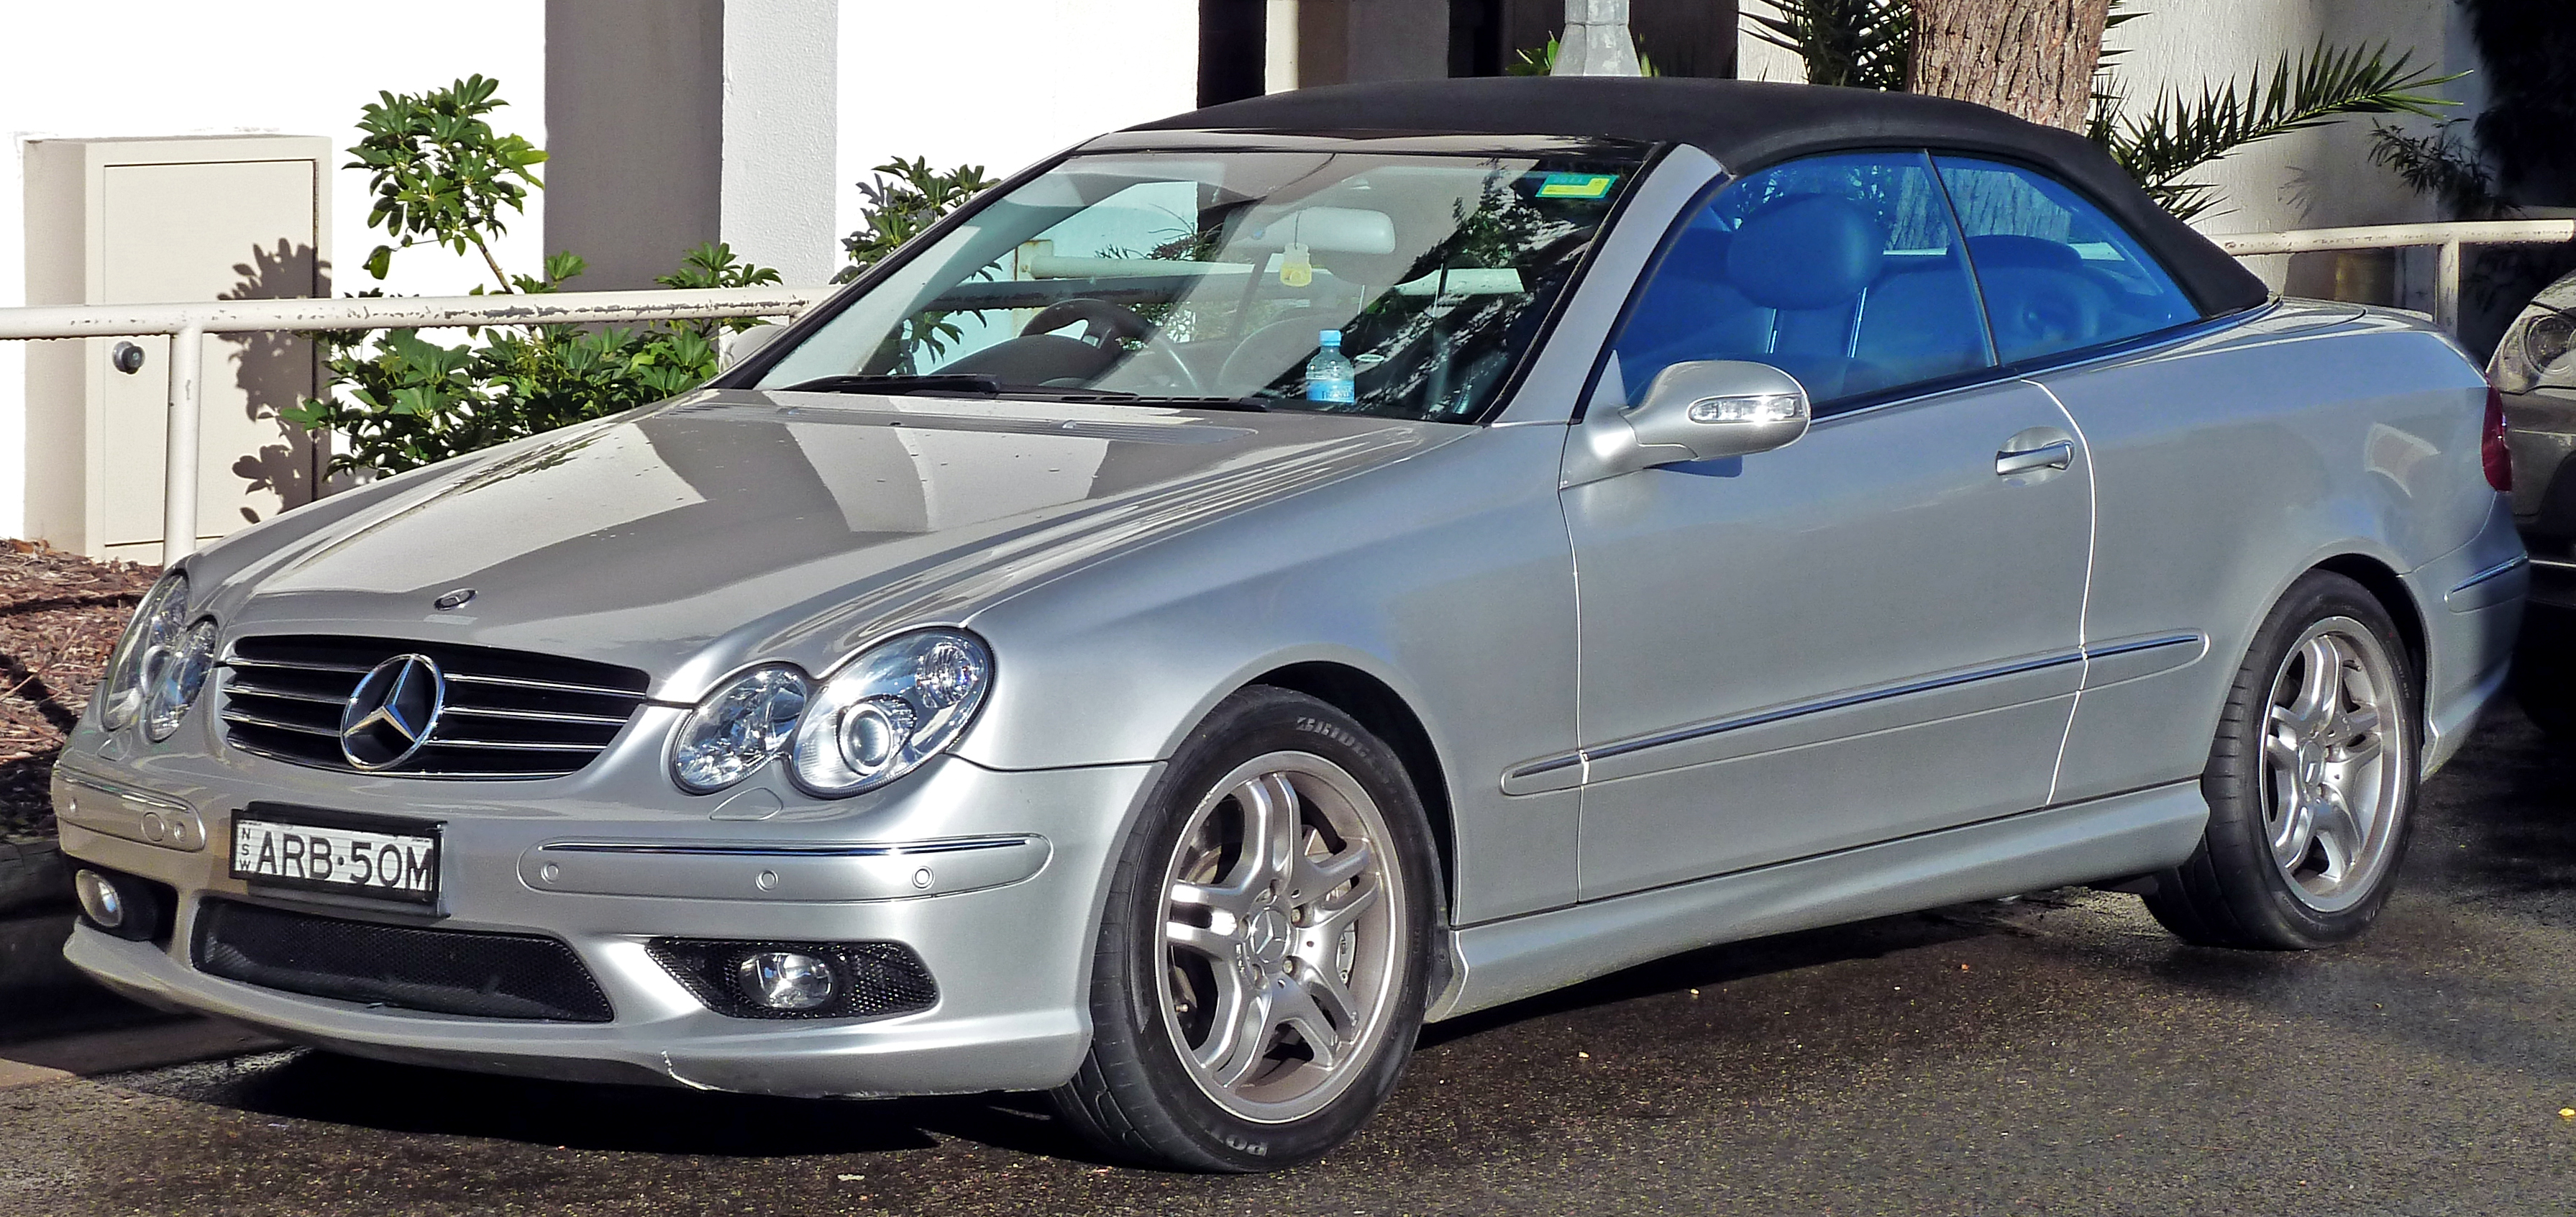 Mercedes-Benz CLK 55 AMG photo 12